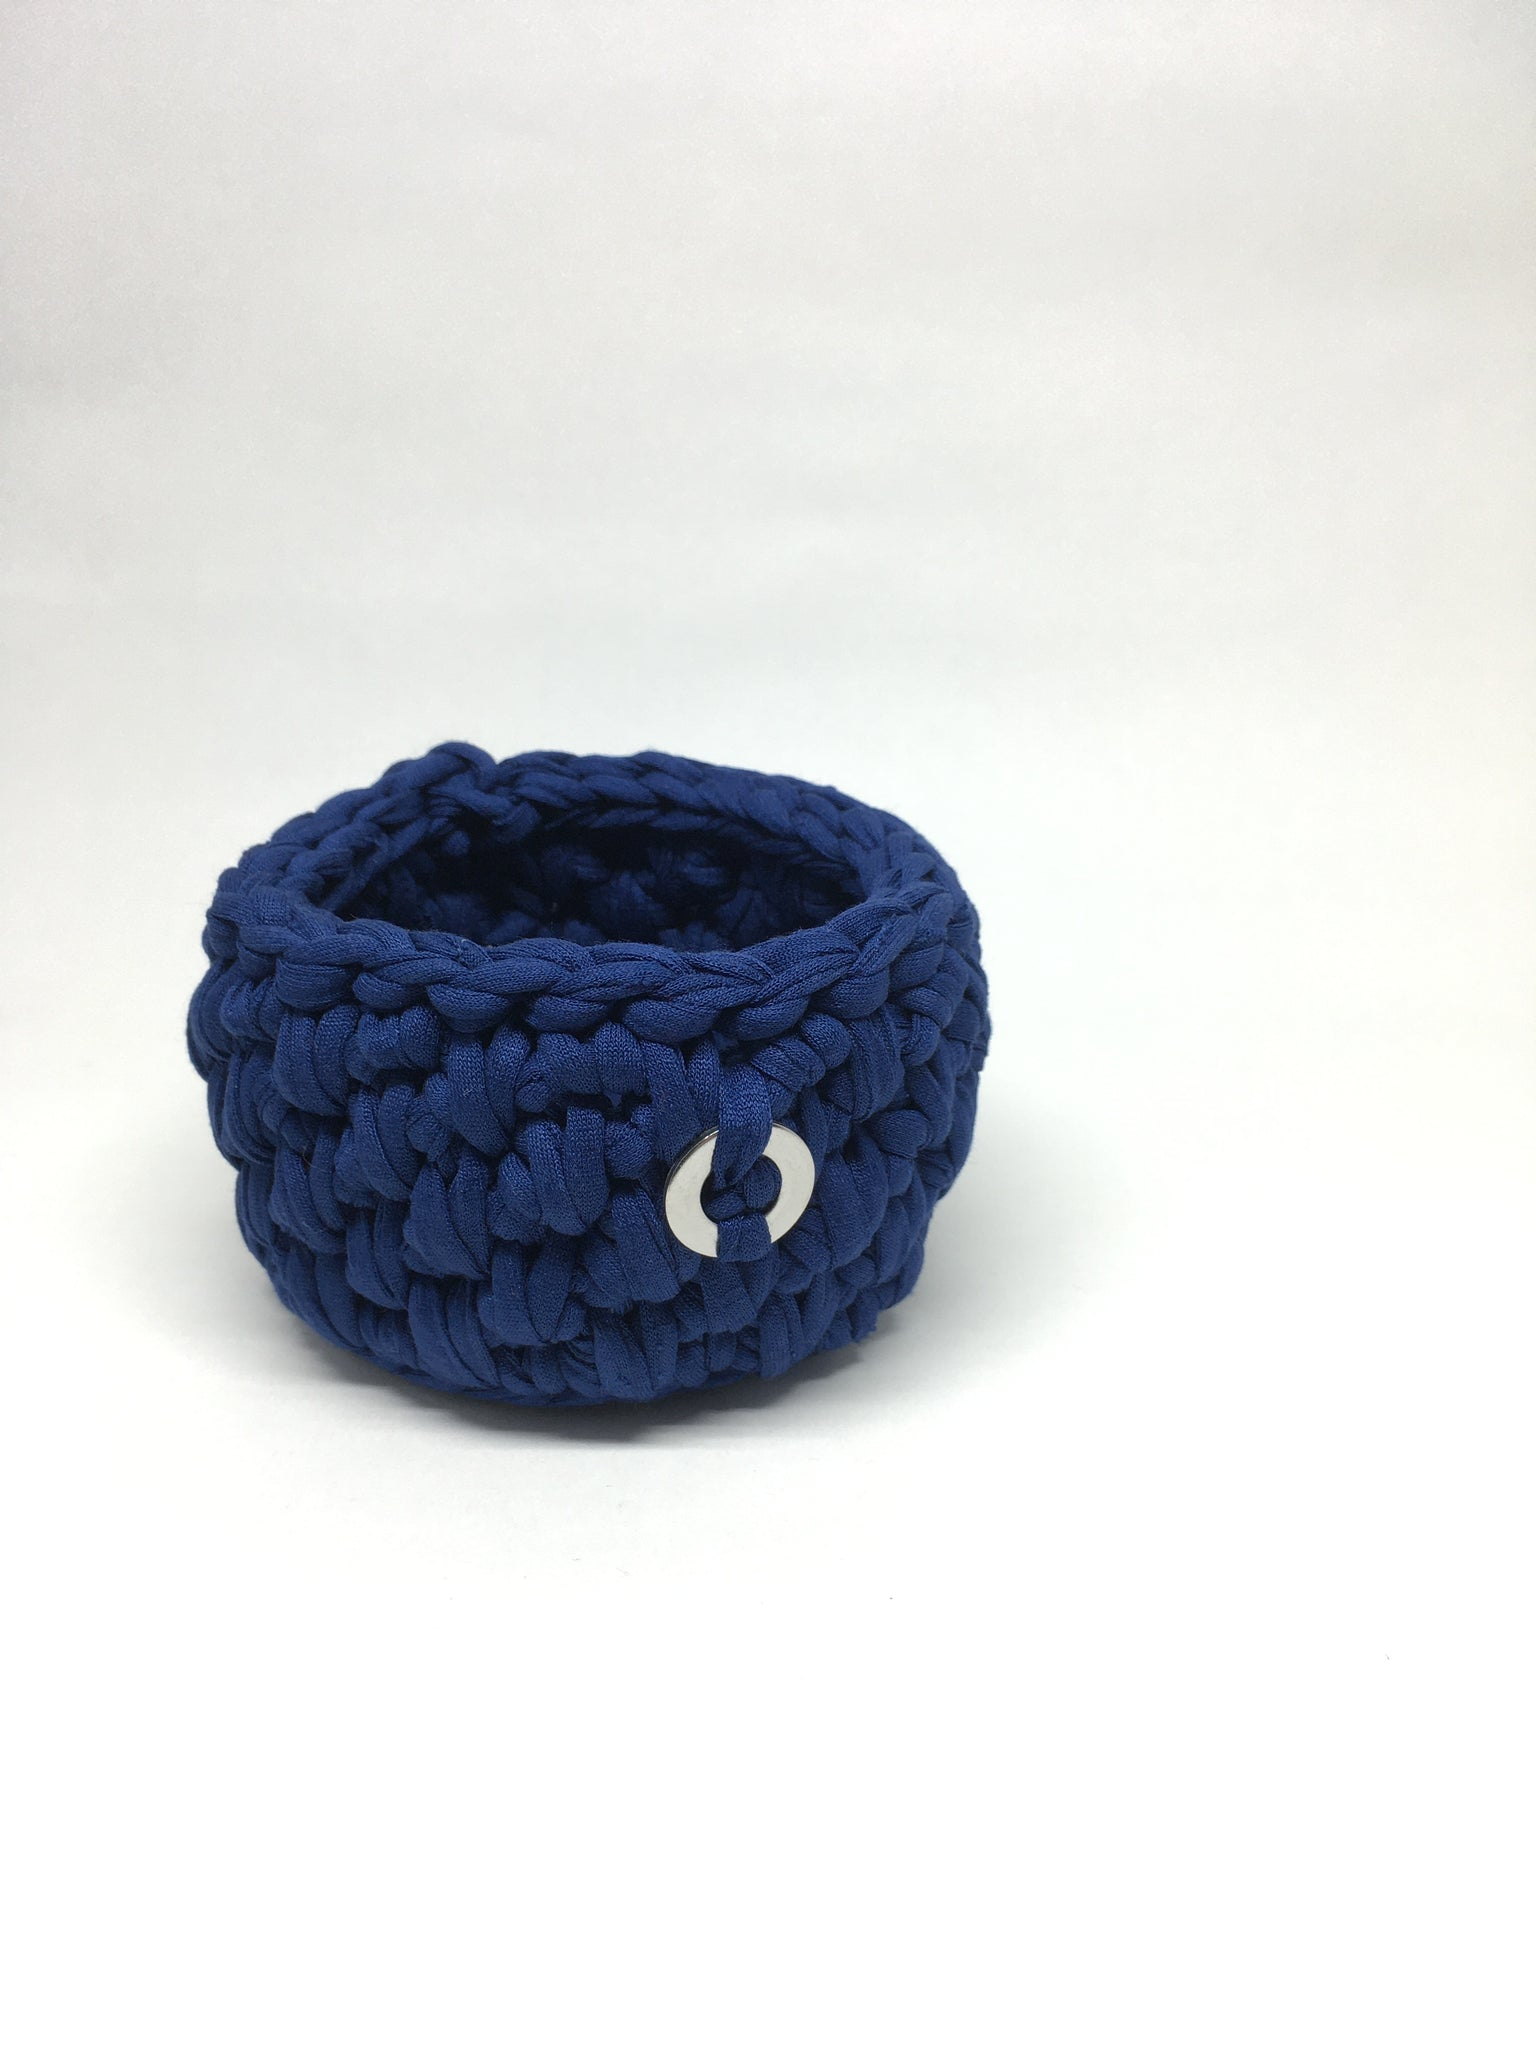 Crochet Basket, Navy Blue – 10x7.5cm